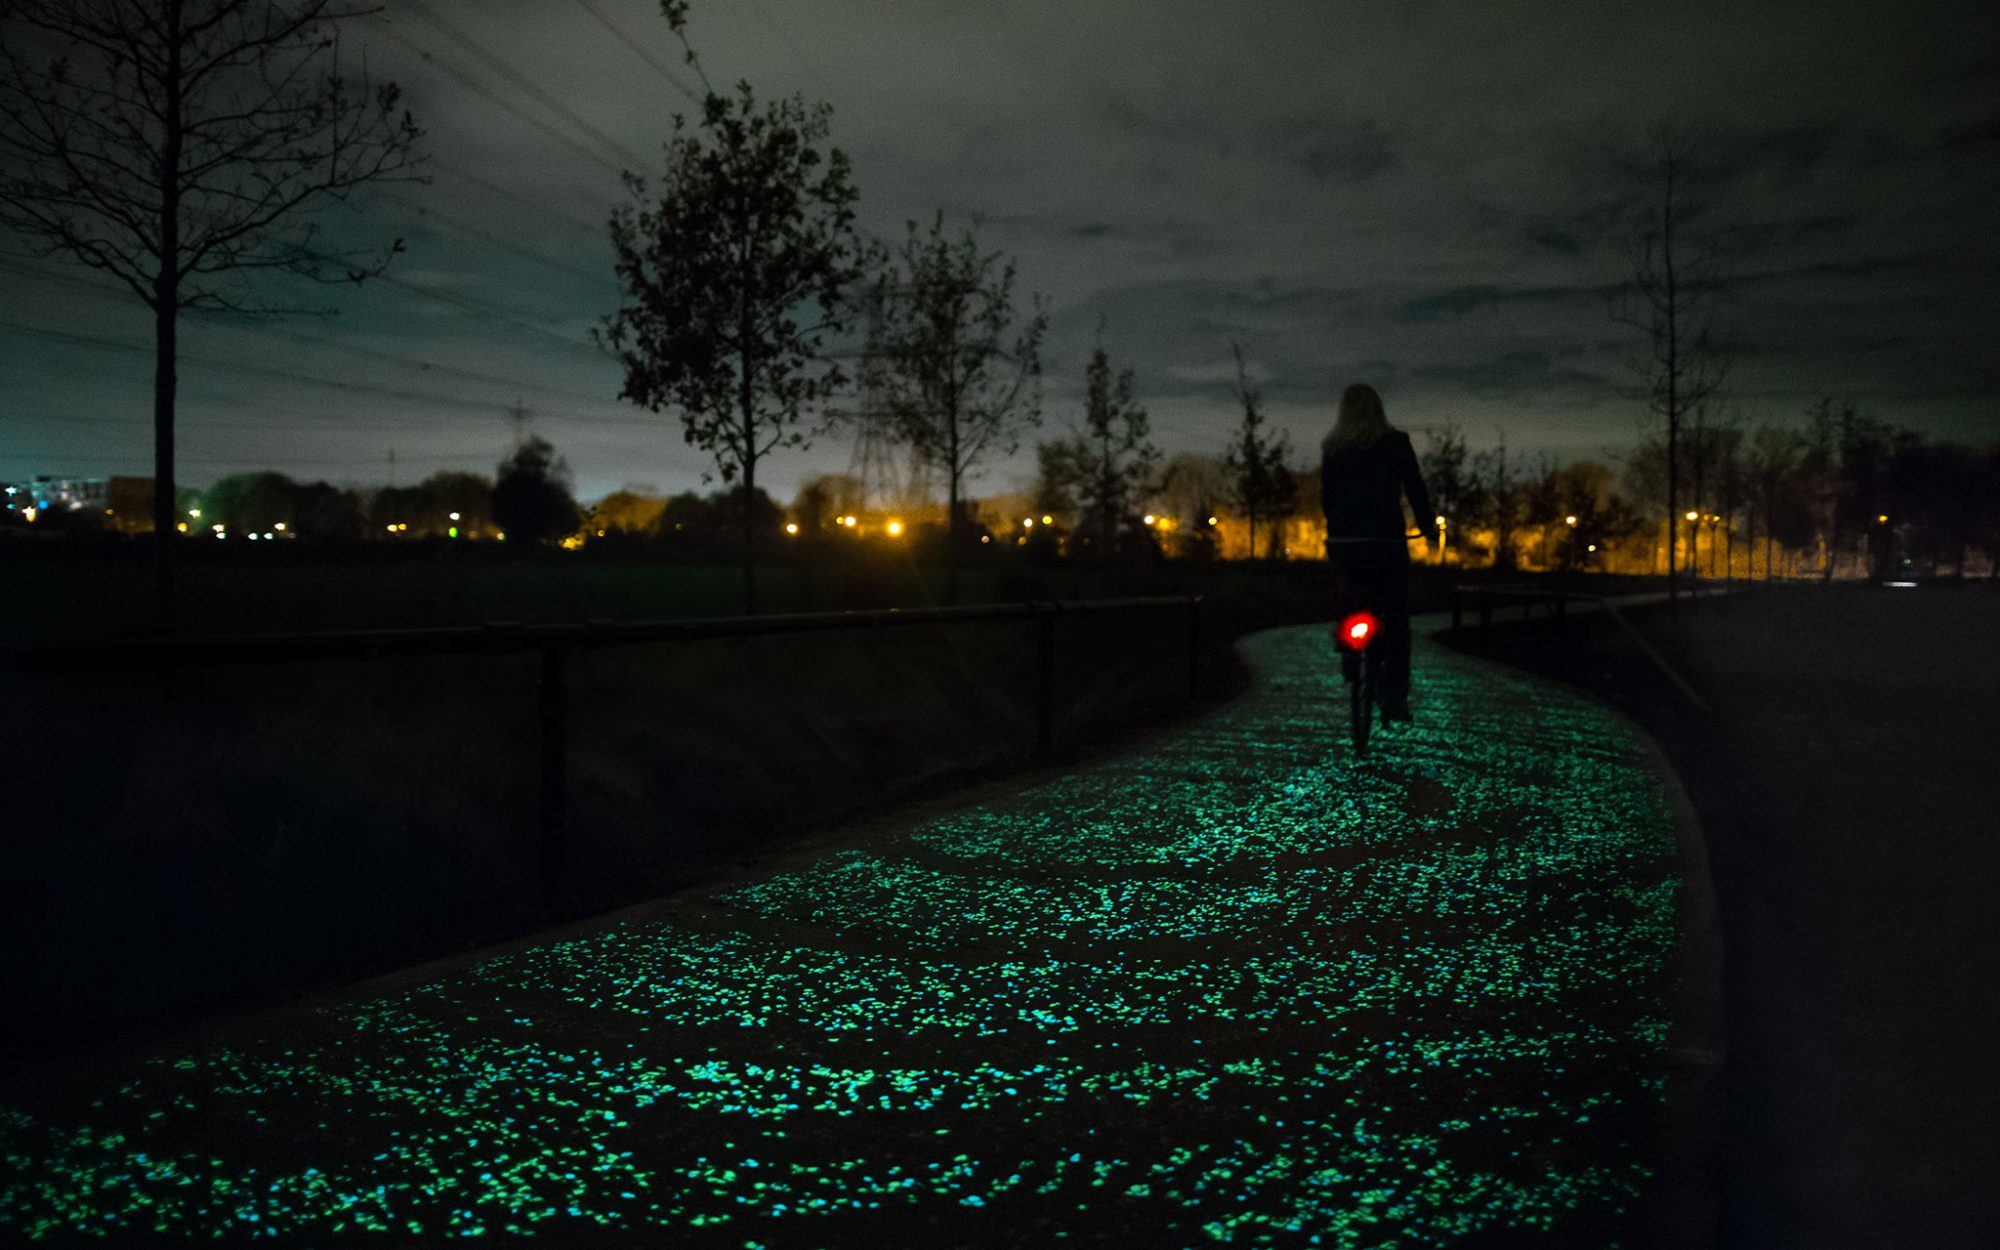 World's Coolest New Tourist Attractions 2015: Starry Night Bicycle Path, Nuenen, Netherlands